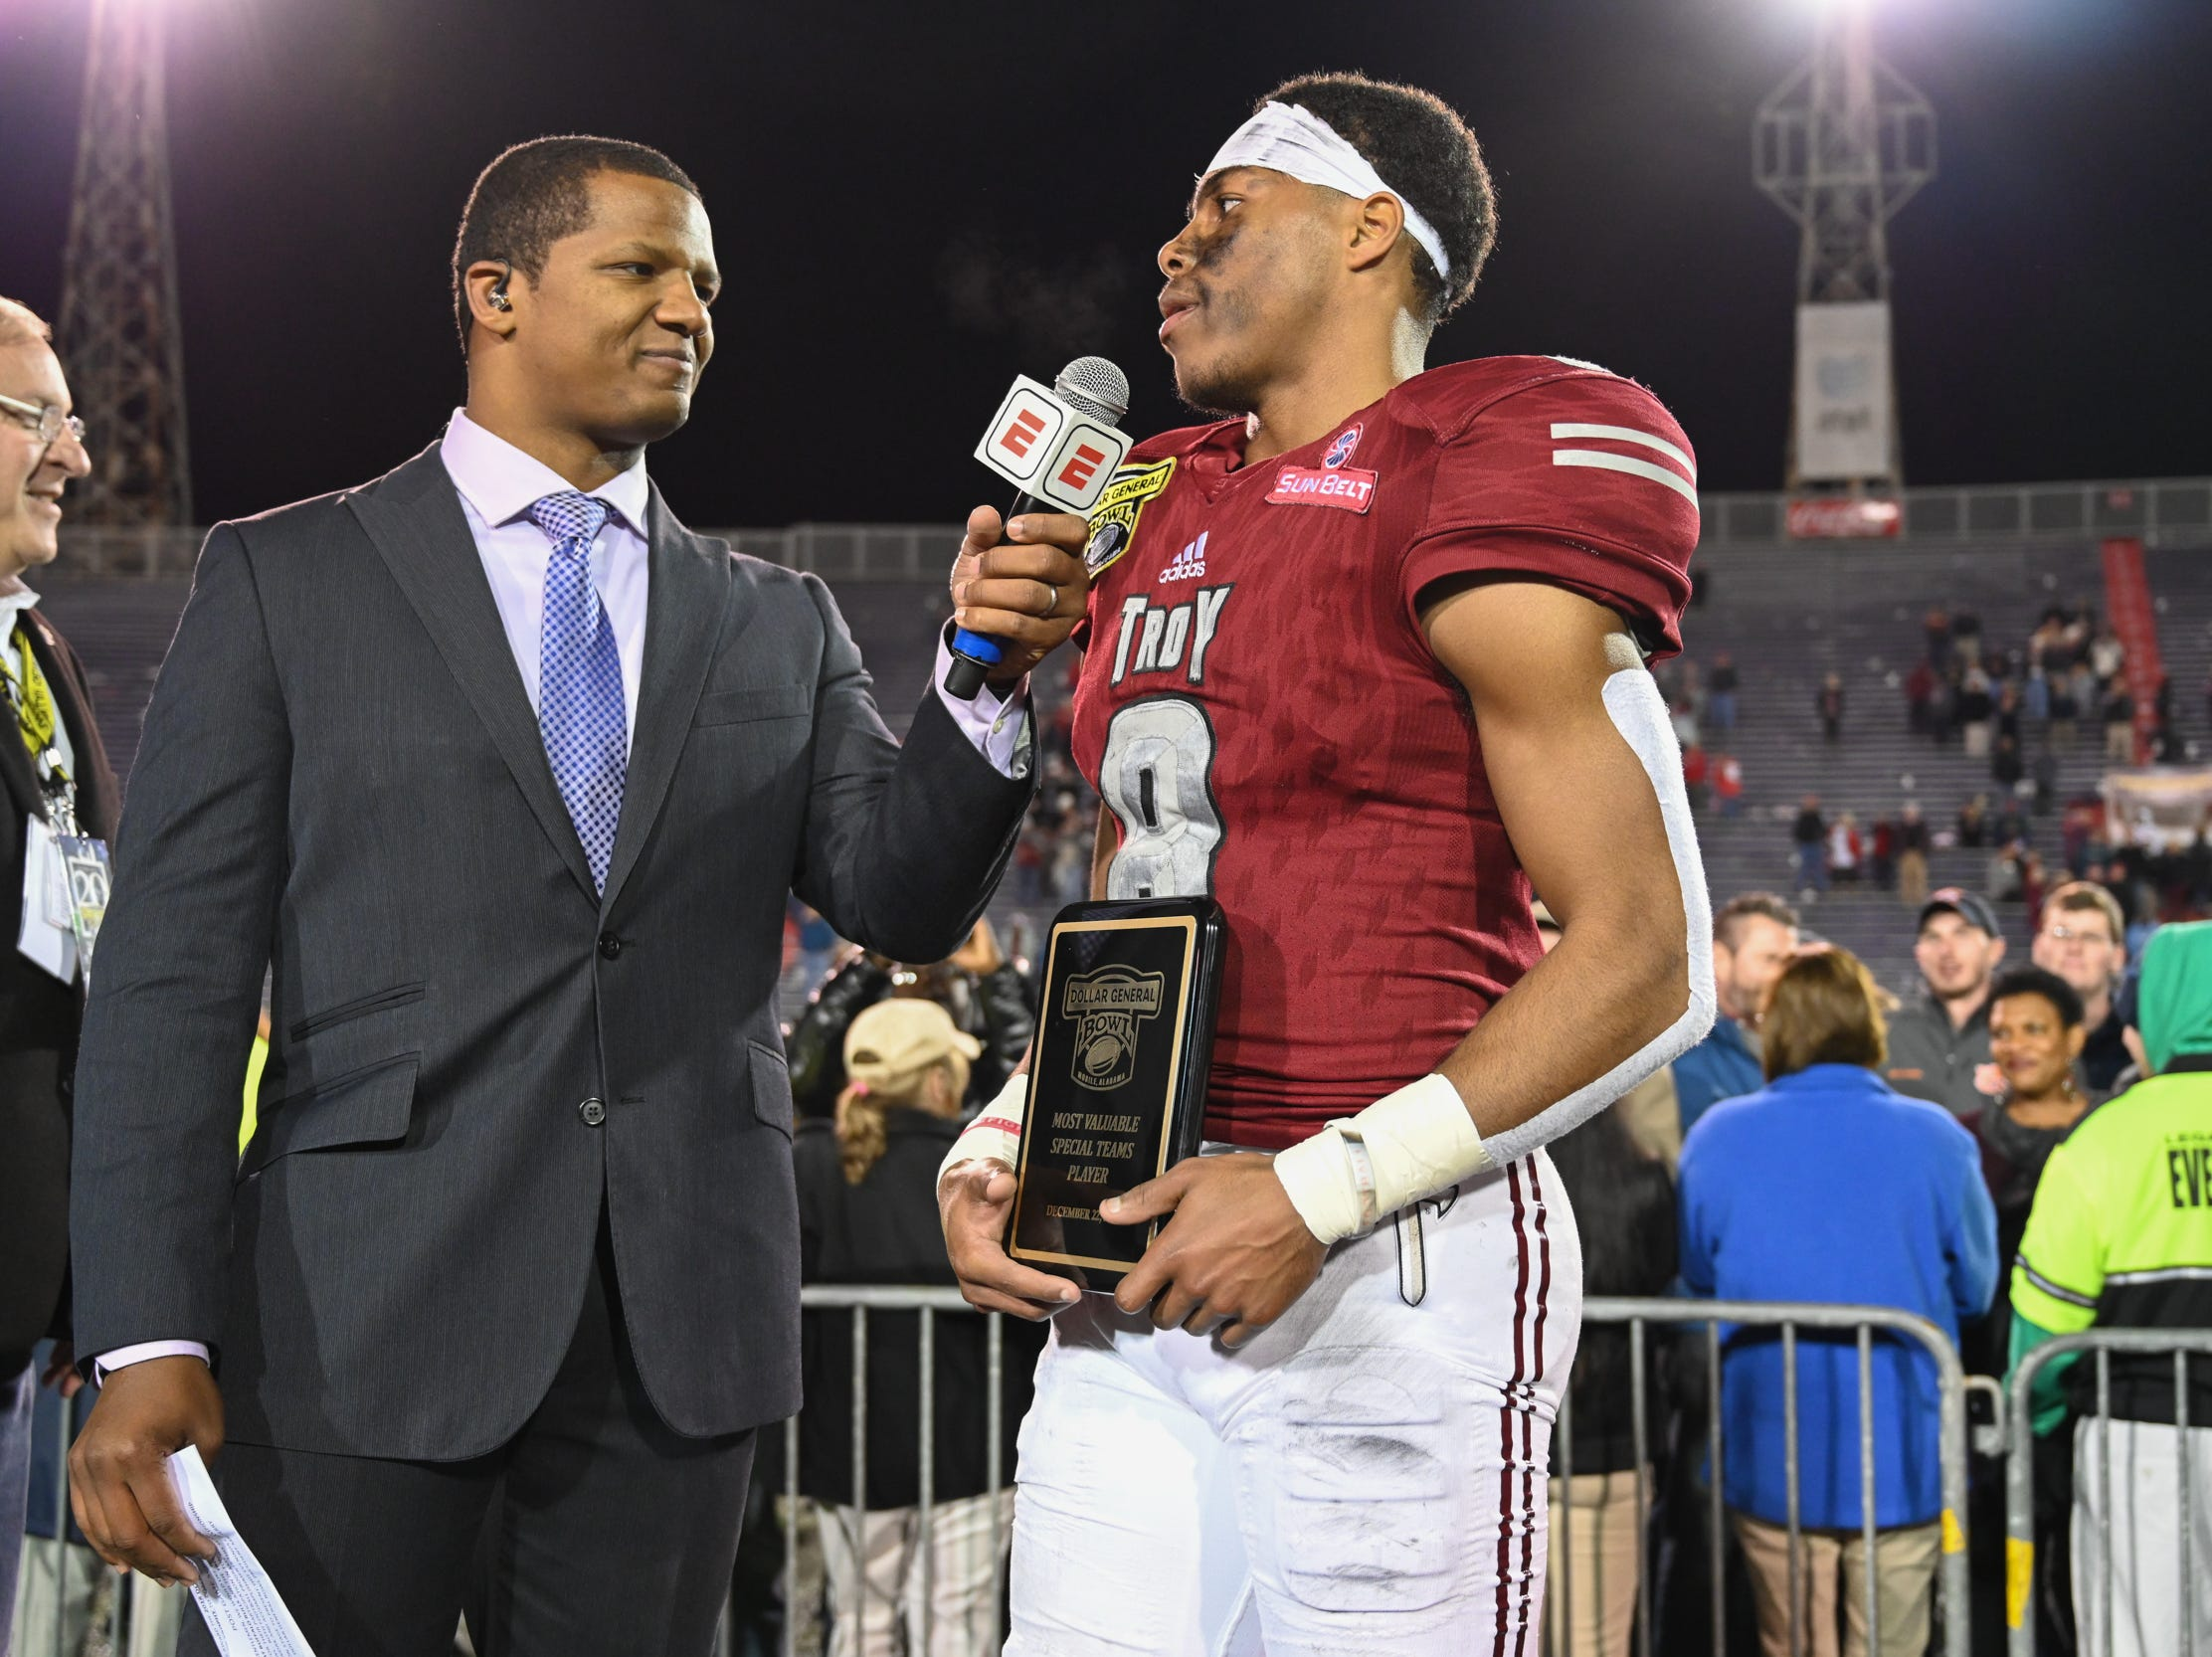 Troy Trojans cornerback Marcus Jones (8) is named most valuable special team player of the the Dollar General Bowl held at Ladd-Peebles Stadium in Mobile on Saturday, Dec. 22, 2018.